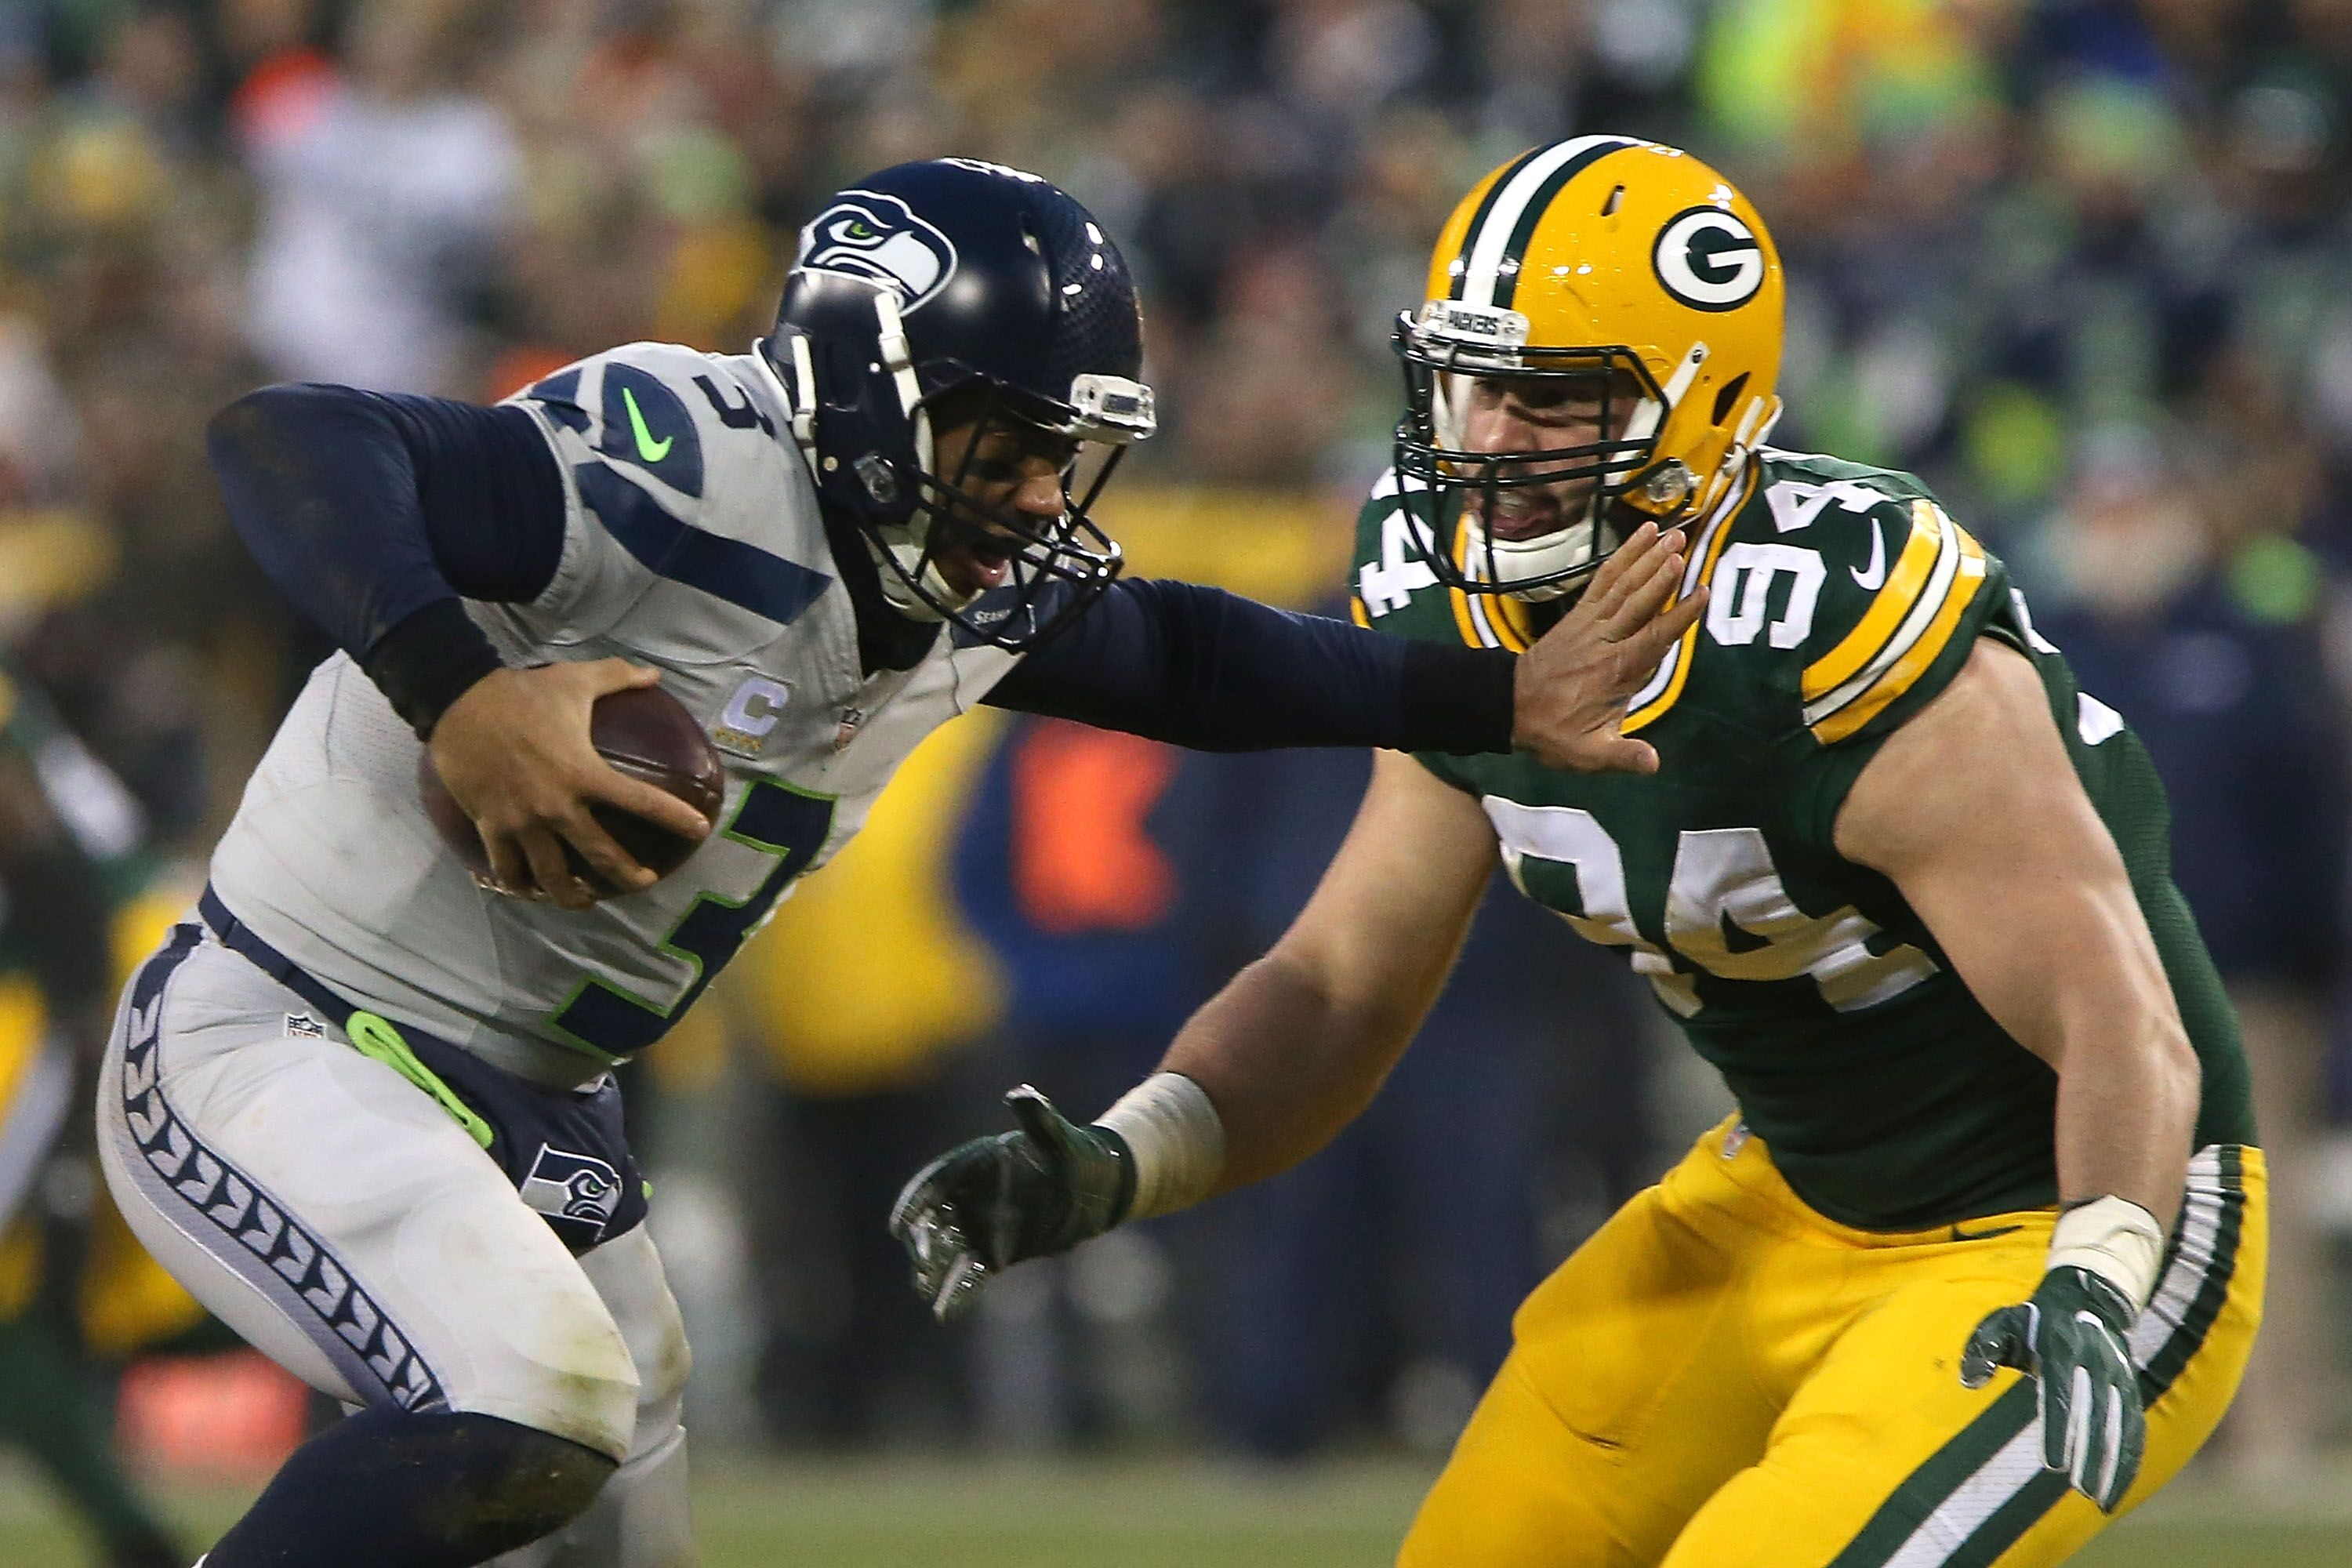 Seahawks vs. Packers: Highlights, game tracker and more